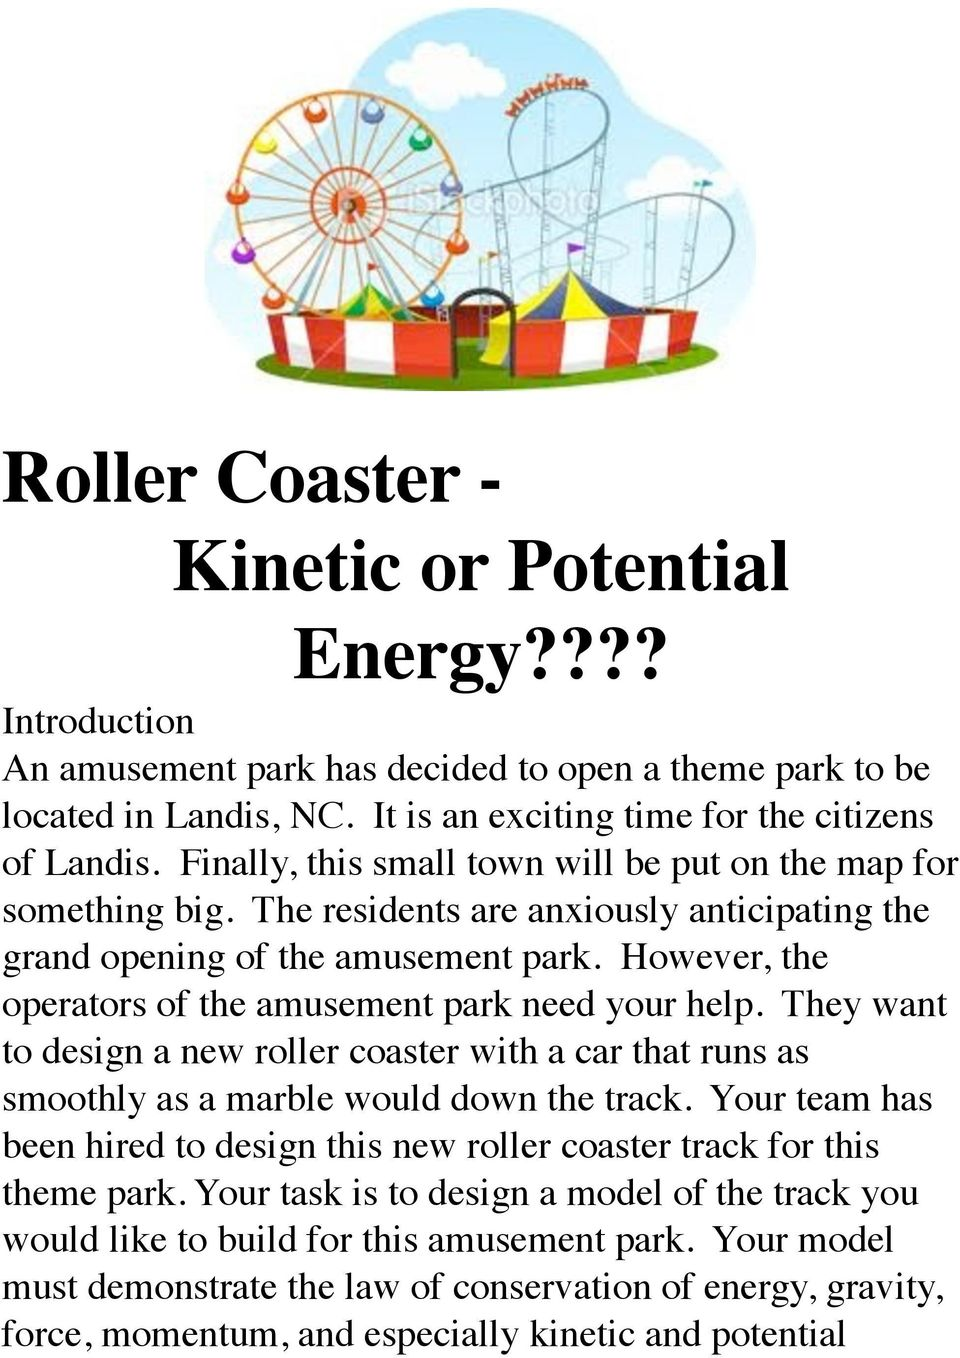 However, the operators of the amusement park need your help. They want to design a new roller coaster with a car that runs as smoothly as a marble would down the track.